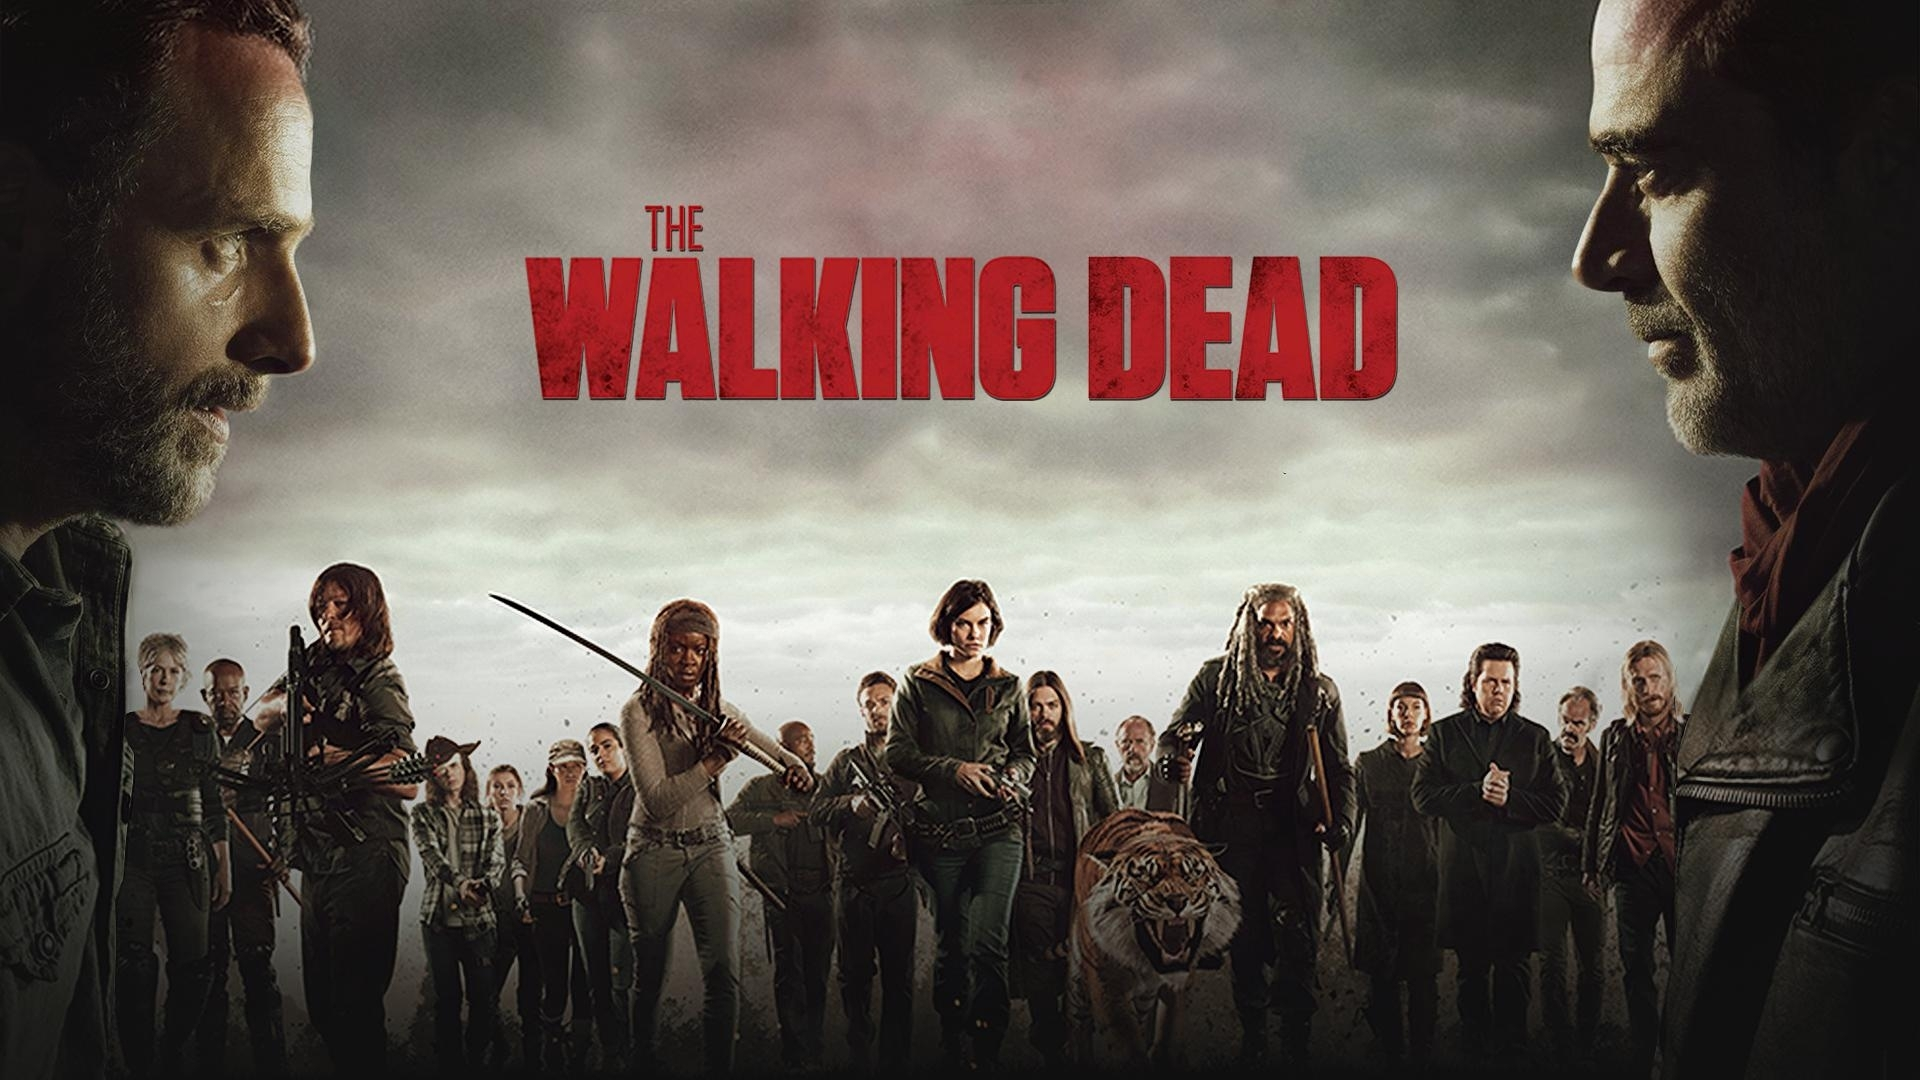 10 Top The Walking Dead Season 8 Wallpaper FULL HD 1080p For PC Background